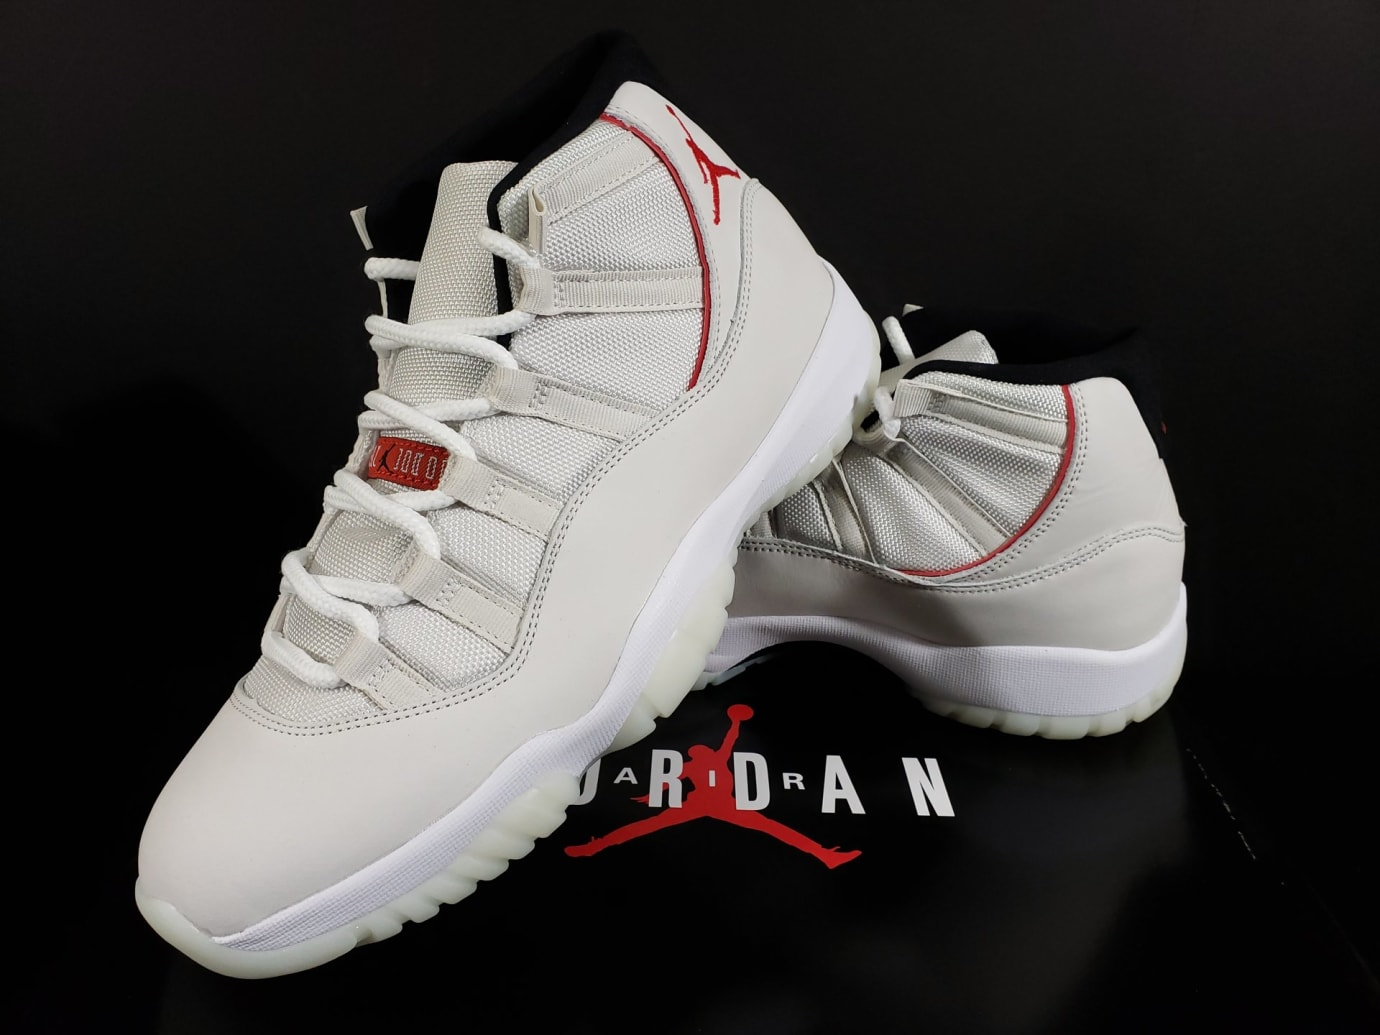 c62f1bad6e4 Image via Fineline1721 · Air Jordan 11 XI Platinum Tint Release Date  378037-016 Left